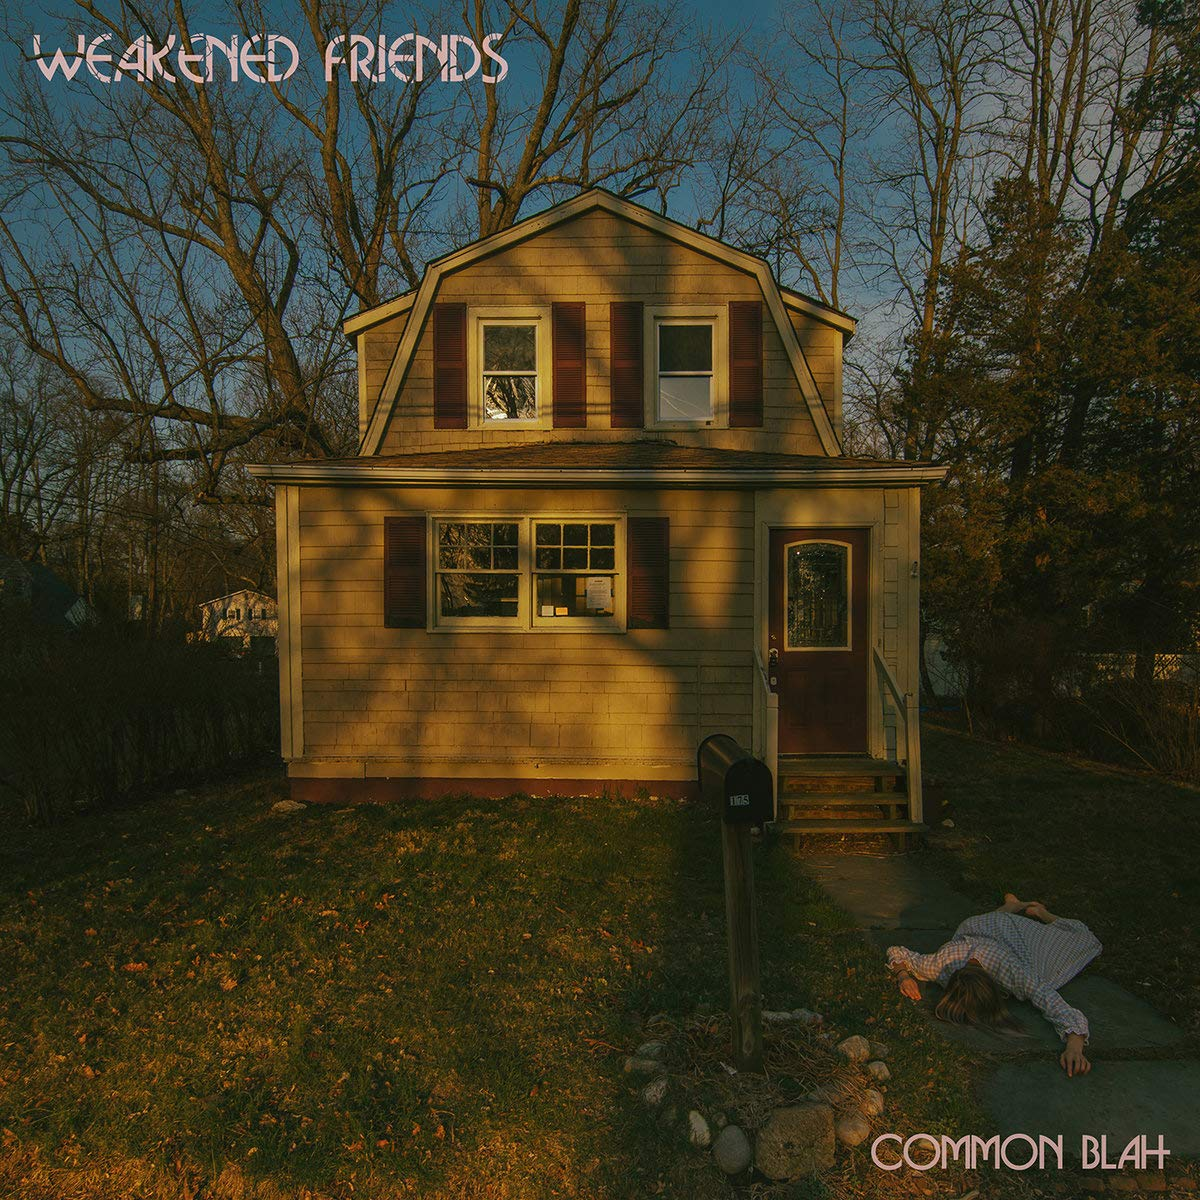 Buy Weakened Friends - Common Blah  New or Used via Amazon